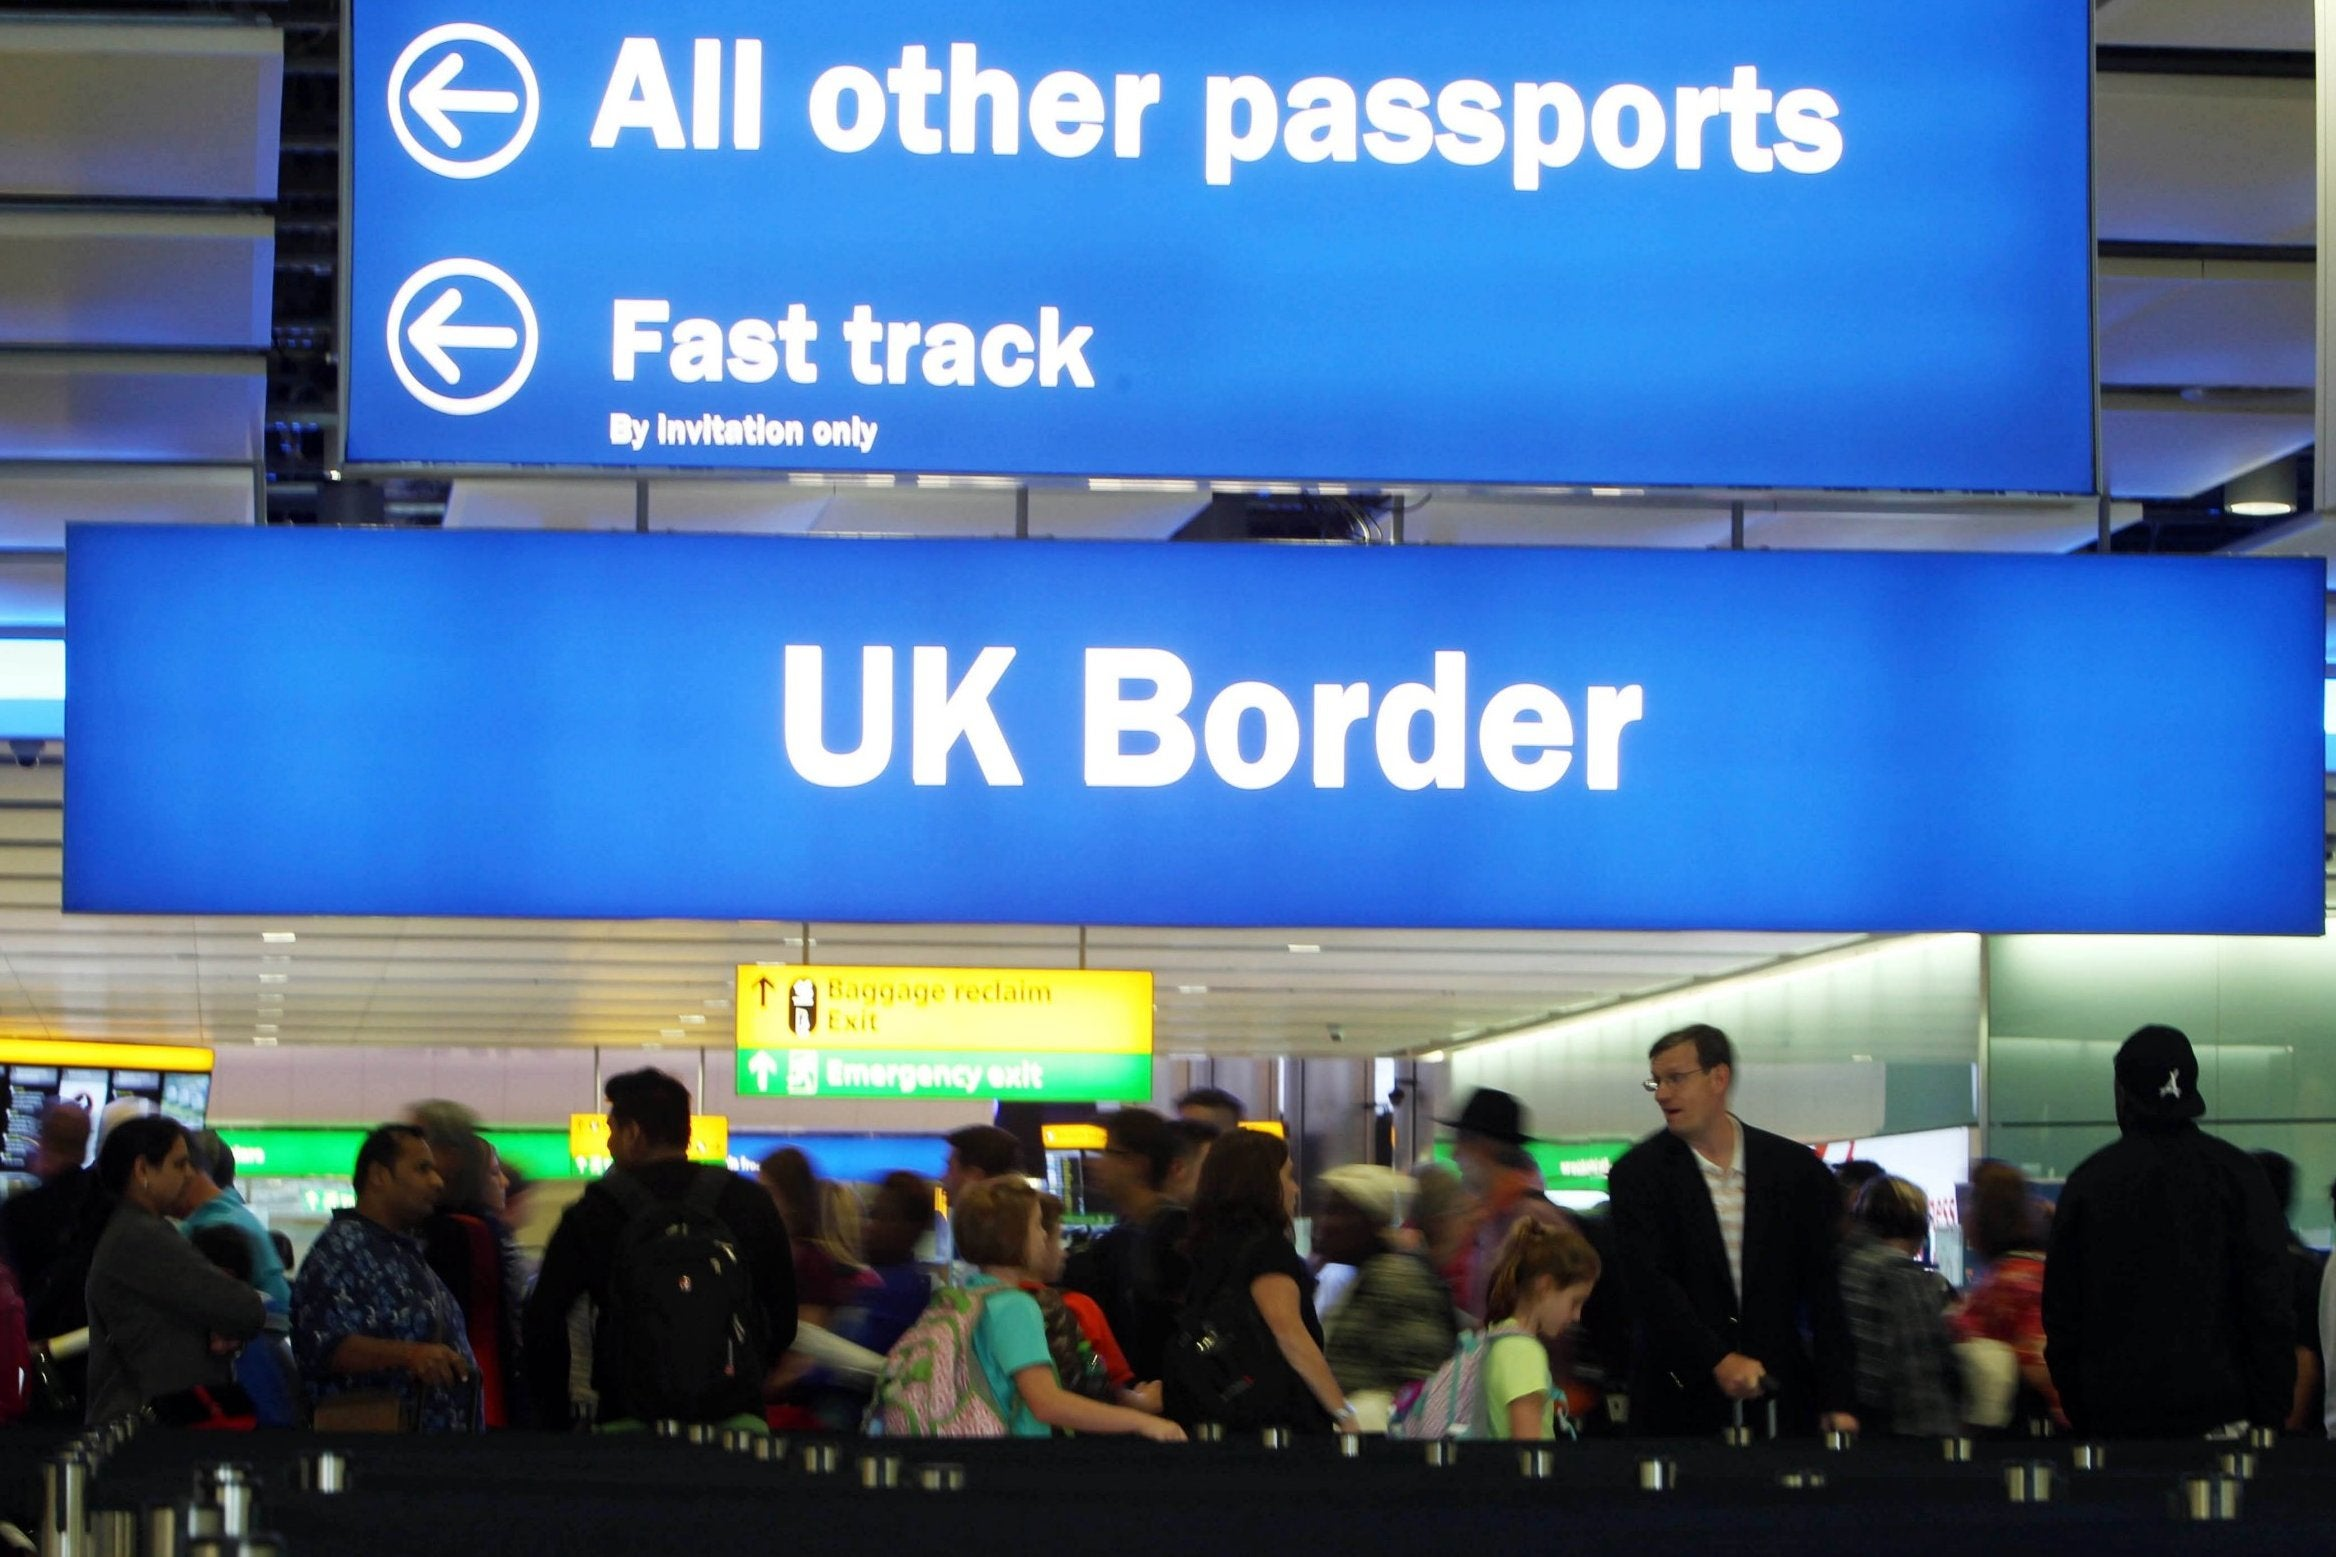 Government systematically overestimated number of immigrants from outside EU, report reveals